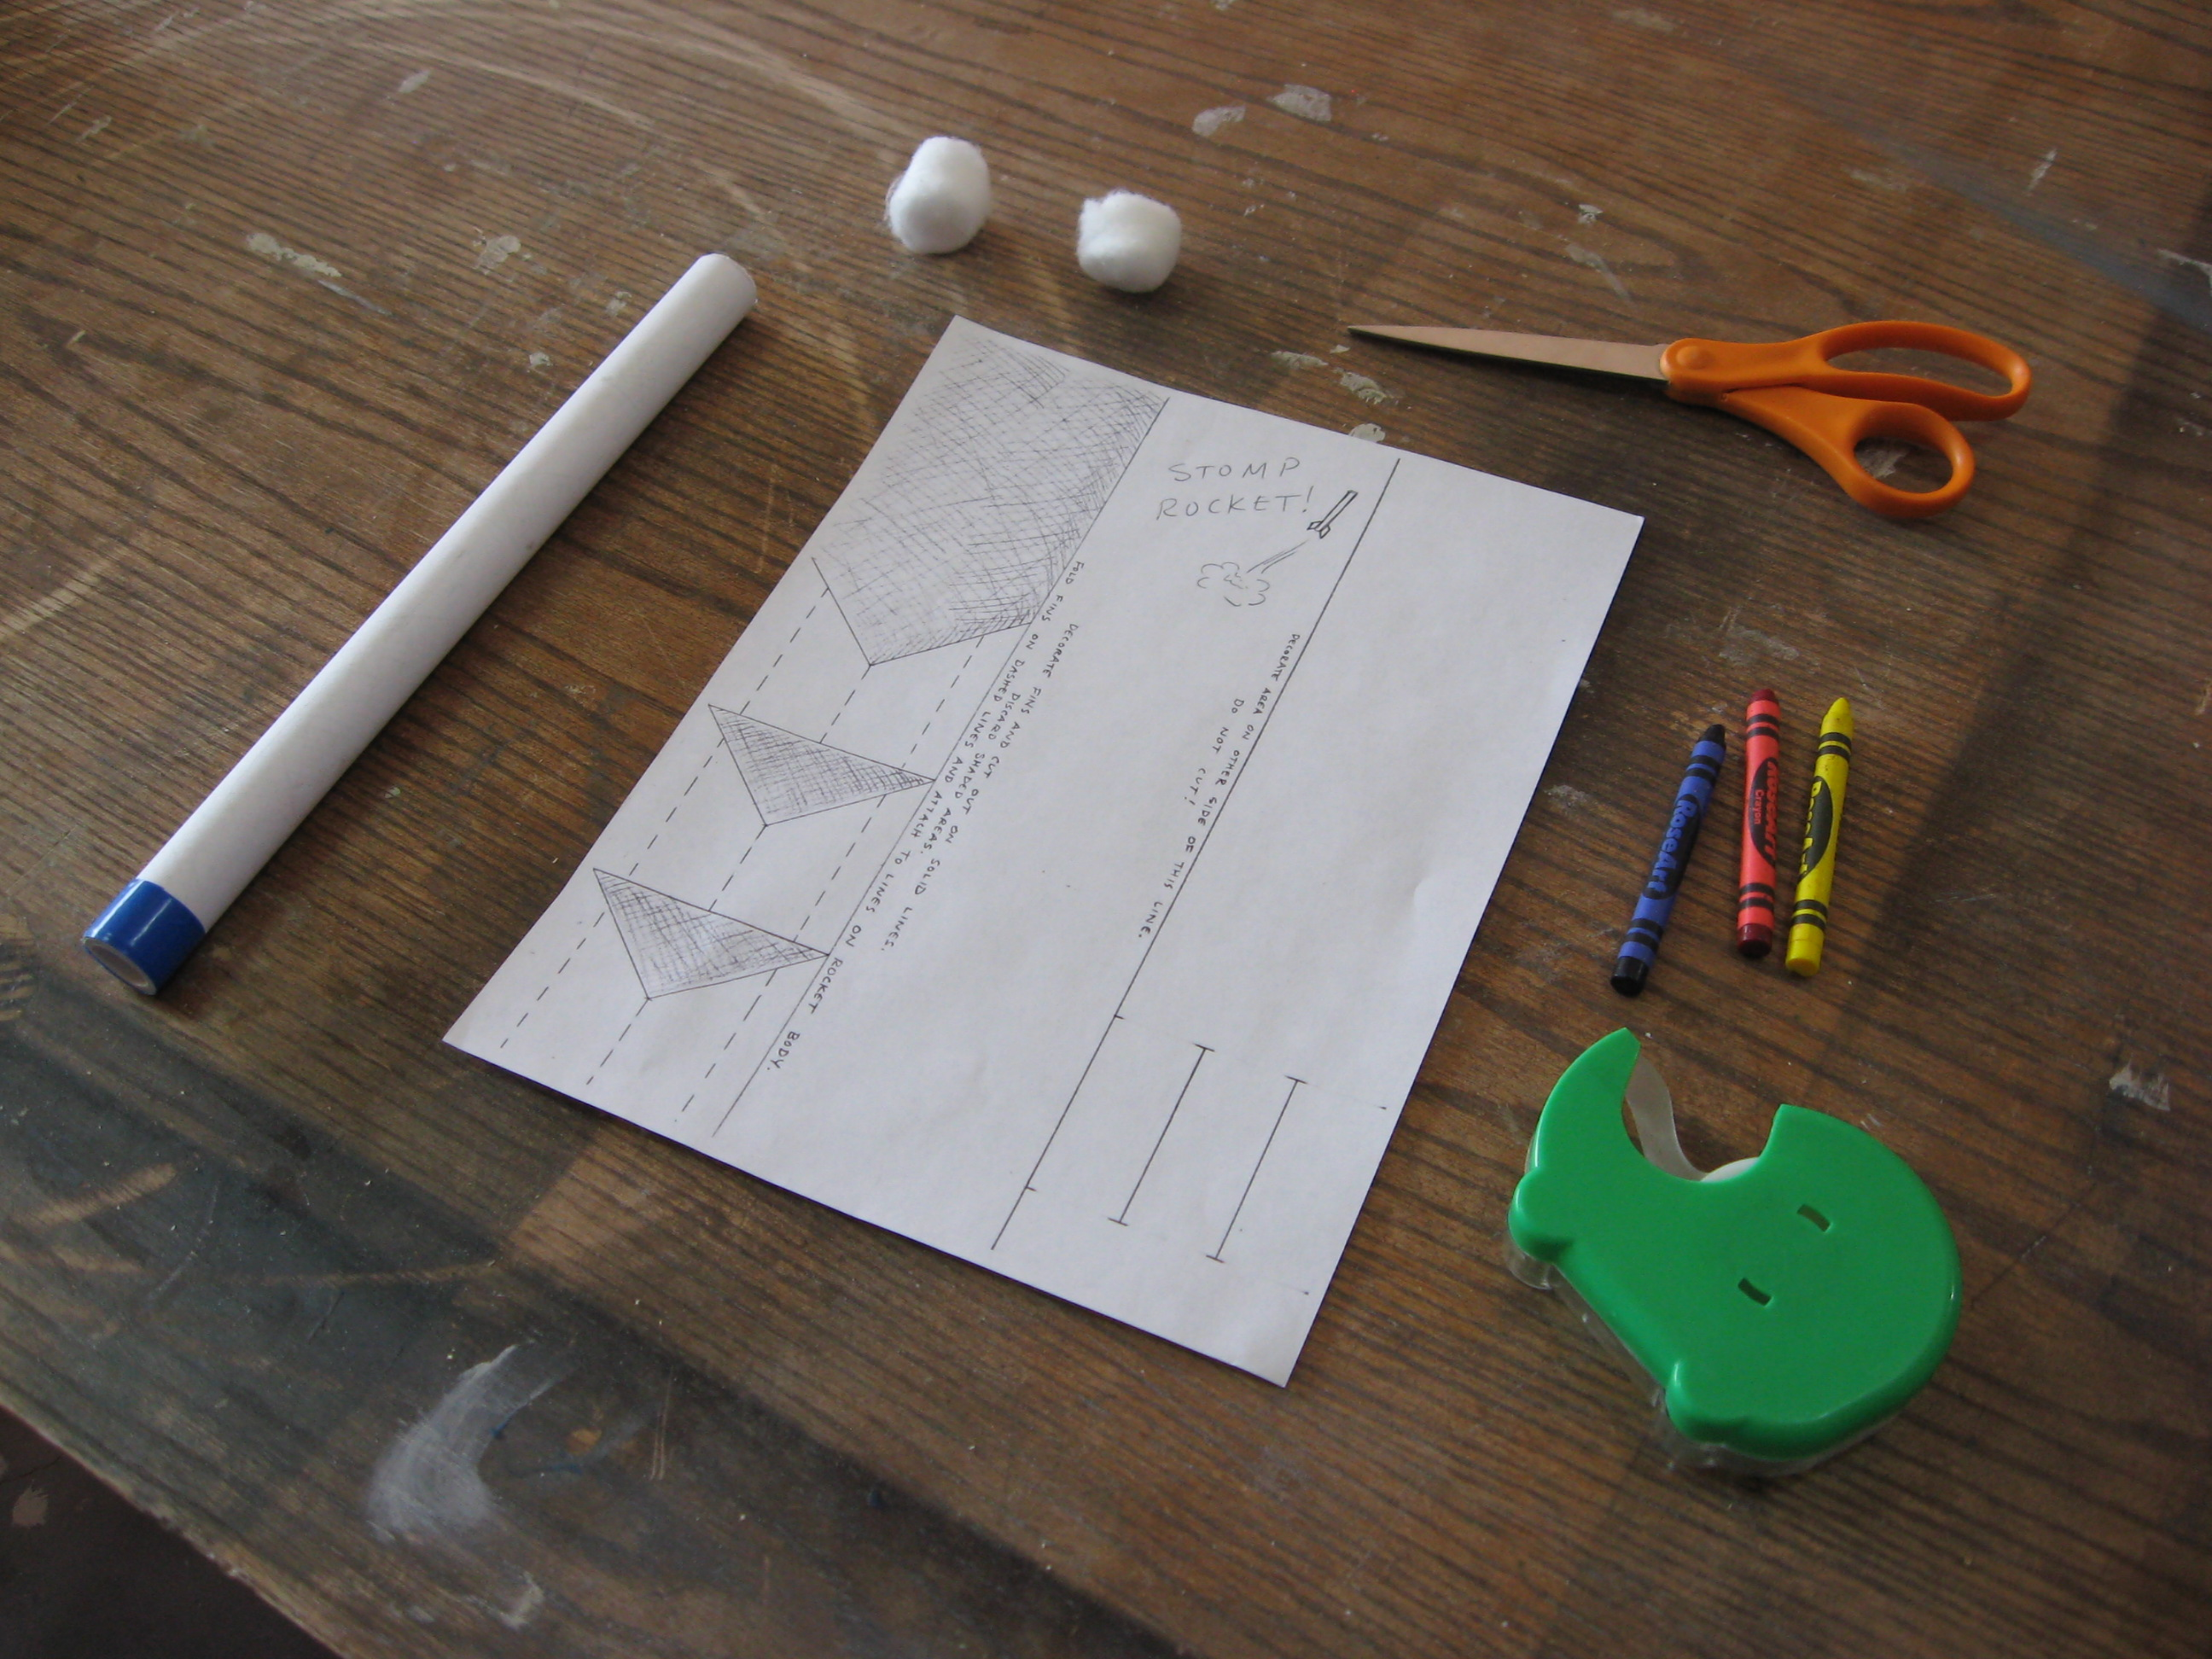 Paper Stomp Rockets: 7 Steps (with Pictures)